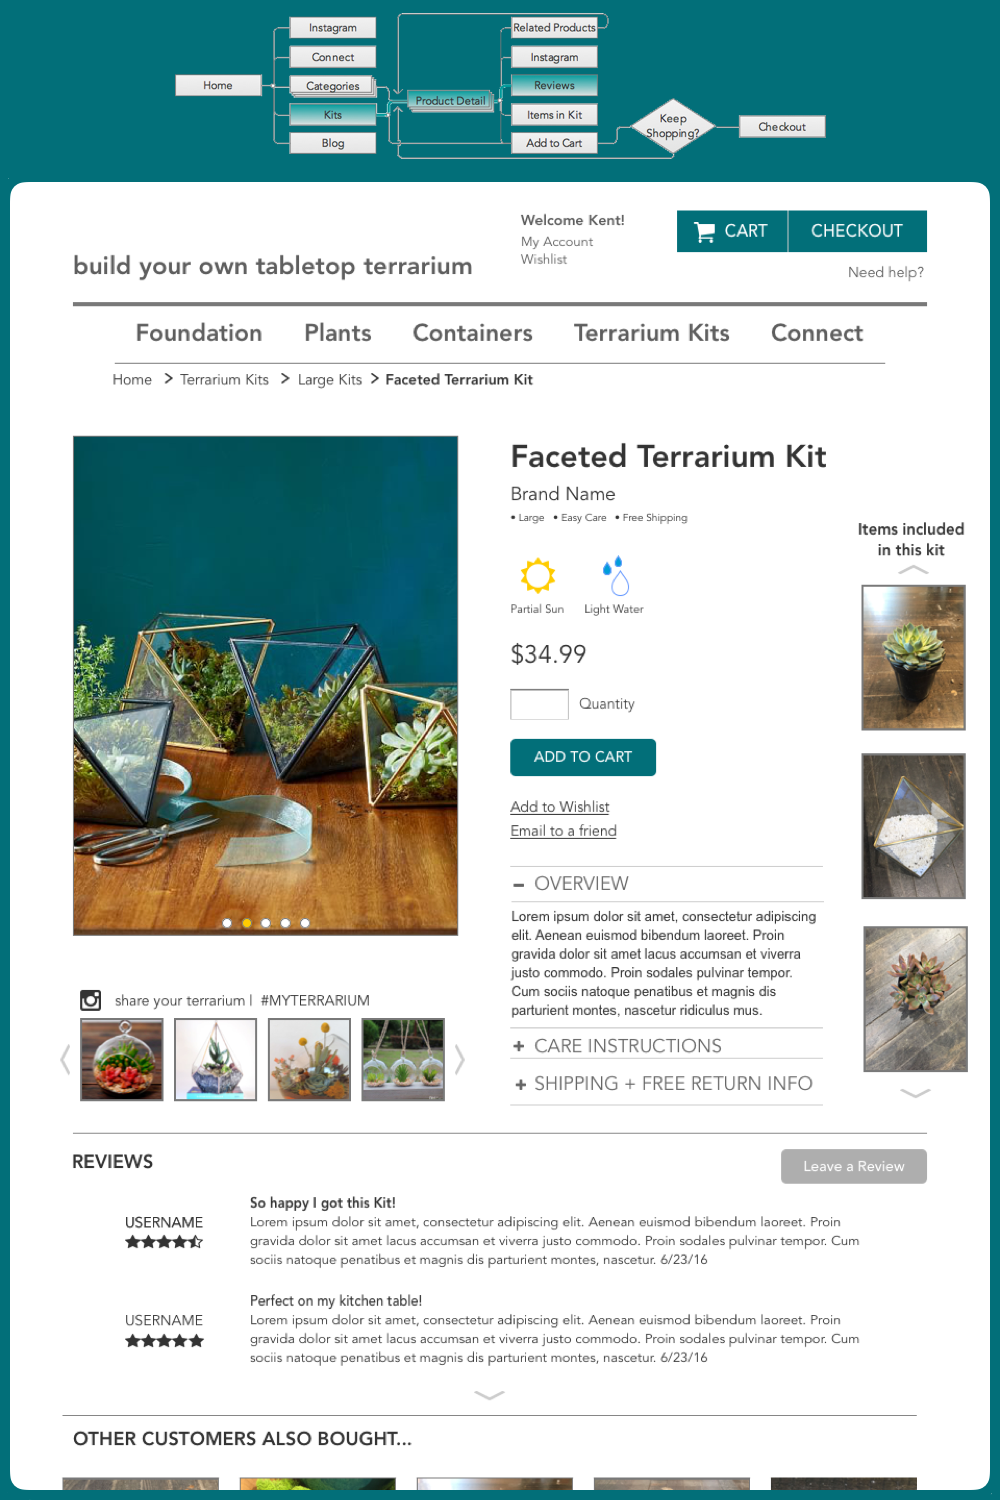 - From here he narrows down the options to large terrarium kits, he finds the faceted terrarium kit and gets more information.  He can see the items that come with the kit, shipping and return information, and the Instagram feed of what other people have made with this exact kit. He reads the product reviews and decides to go for it.